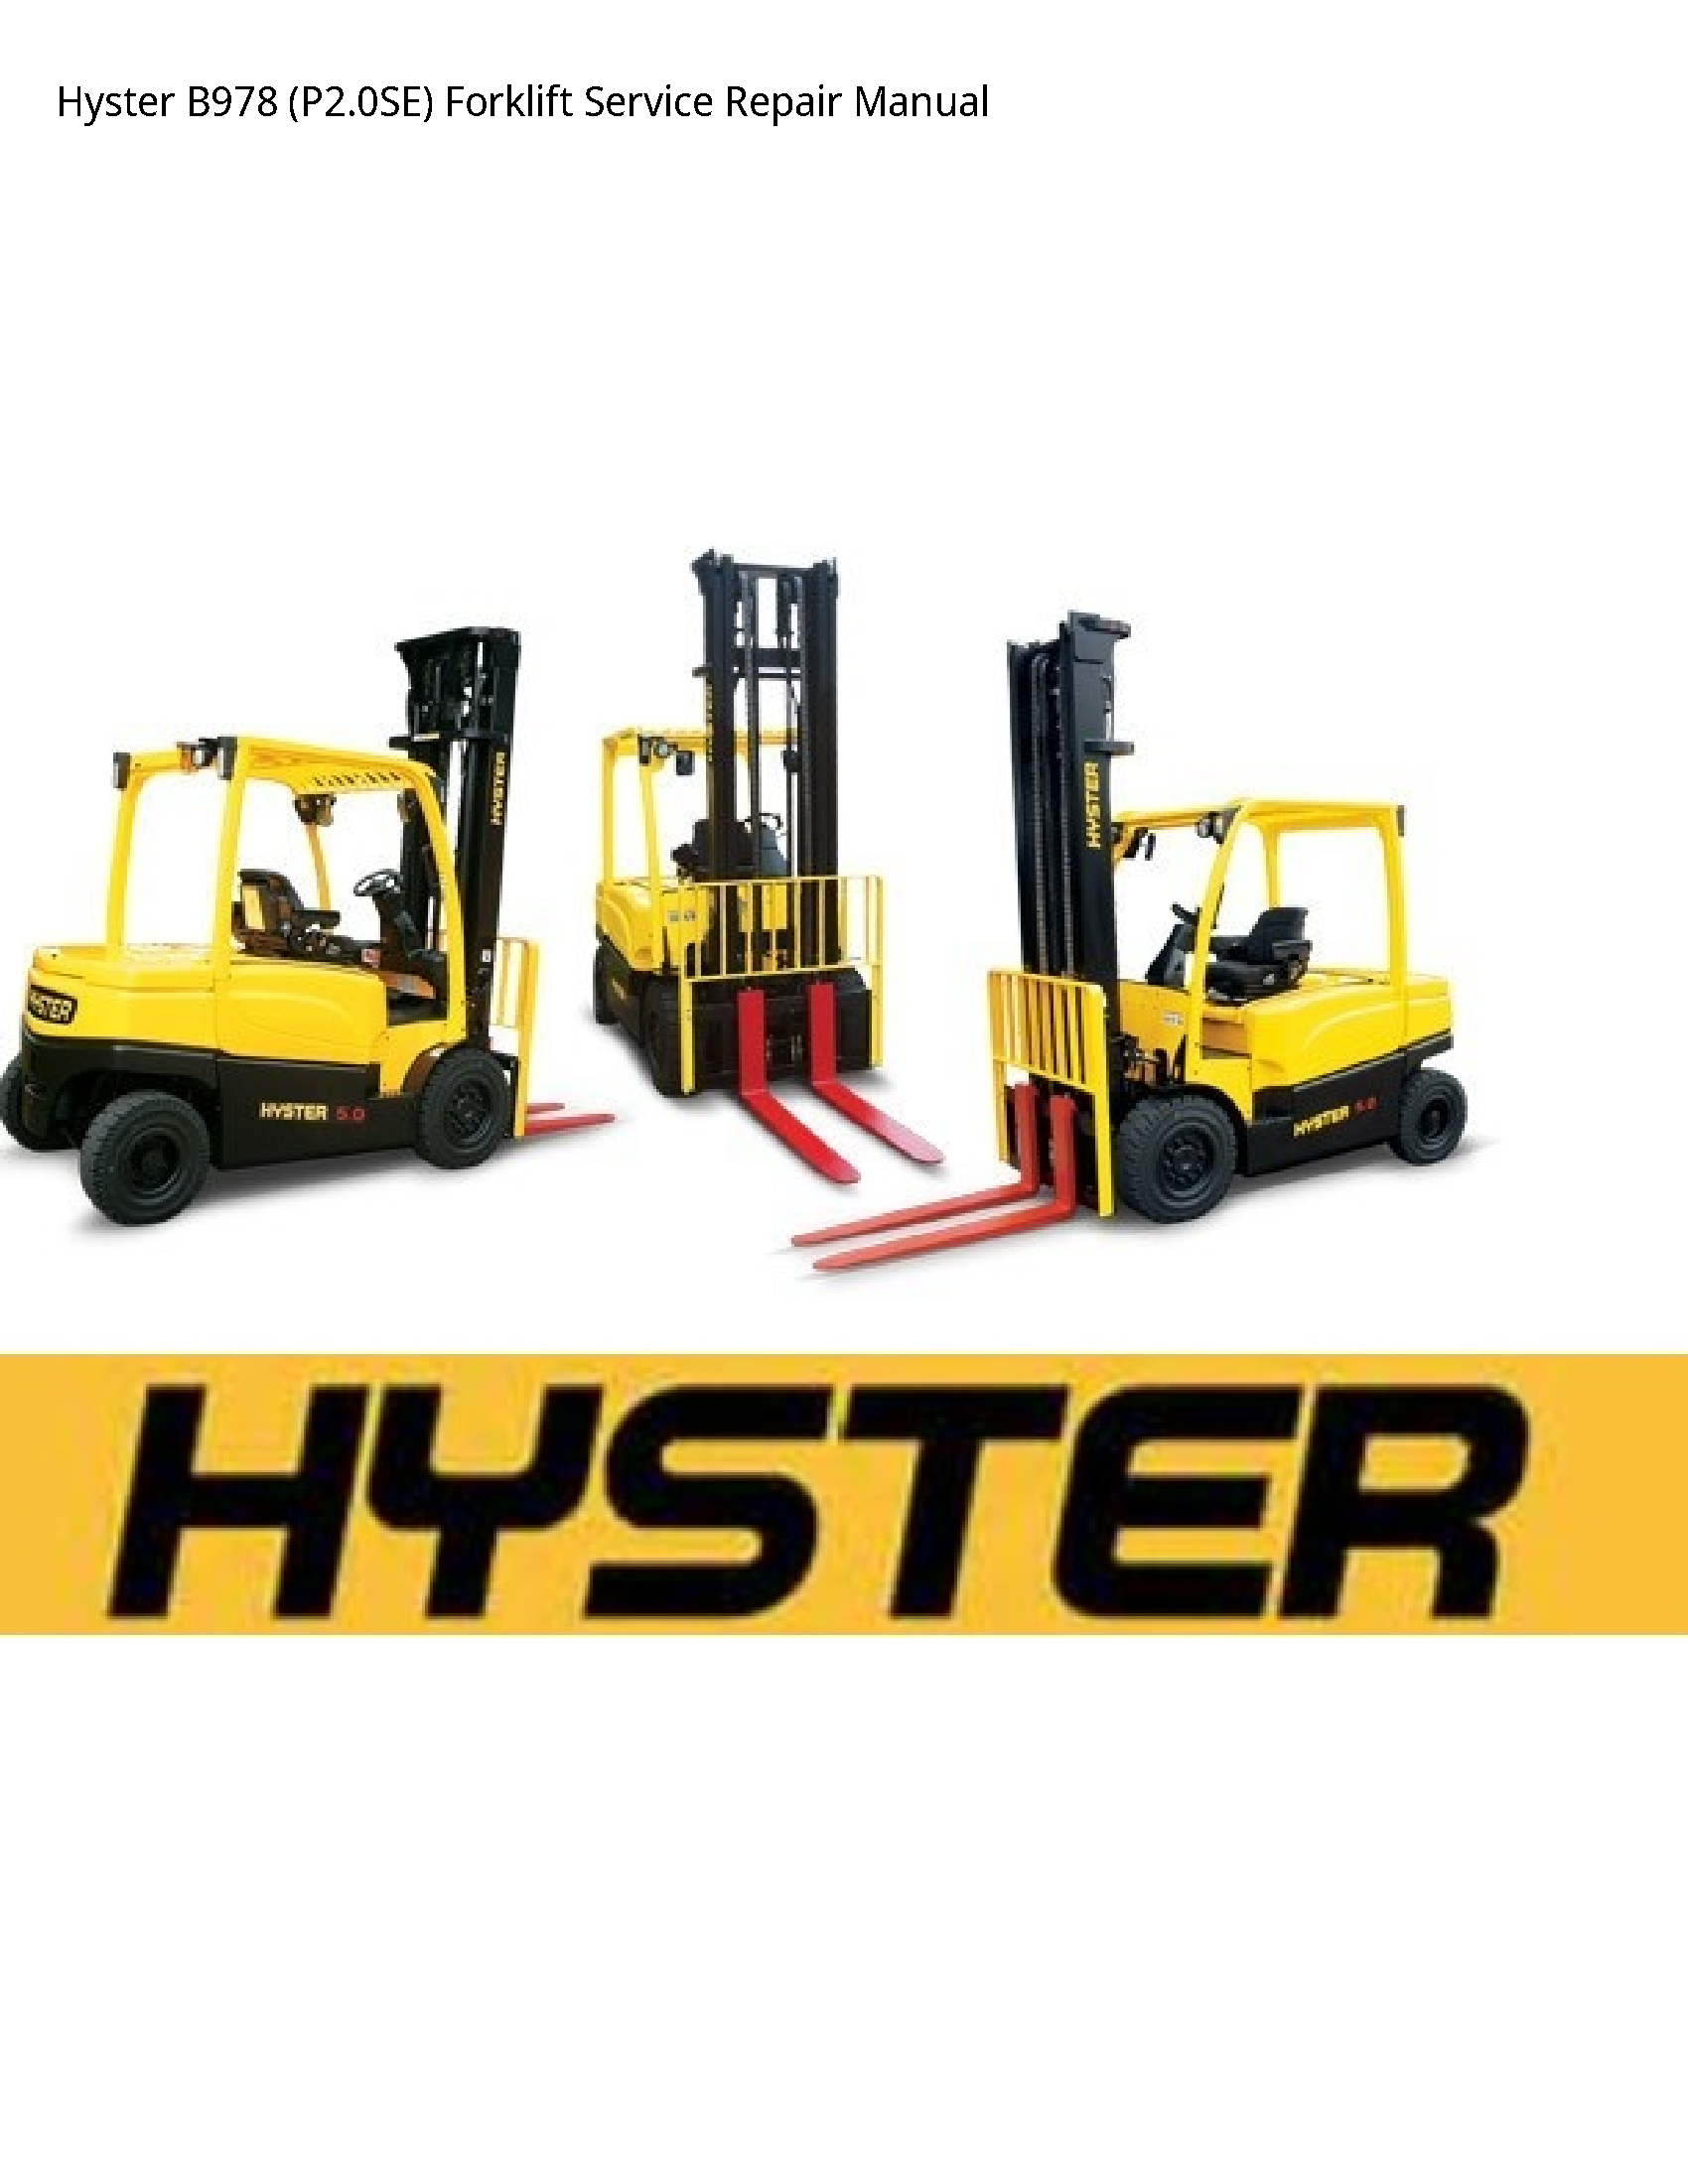 Hyster B978 Forklift manual